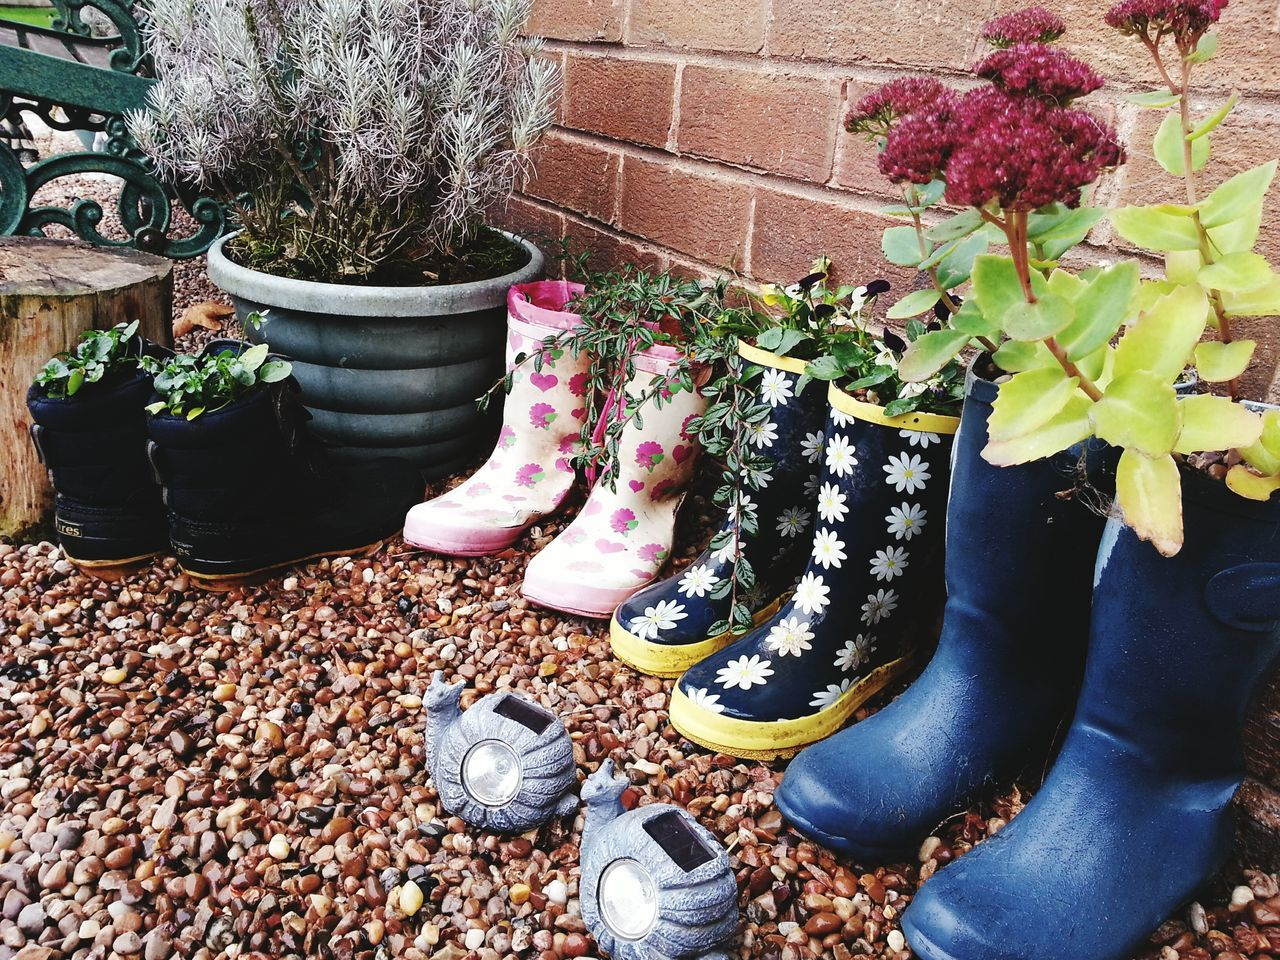 Plant Growth Flower Nature Day No People Outdoors Recycled Recycle Art Recycled Materials Wellington Boots Wellies  Gum Boots Upcycled Plant Pots Garden Garden Photography